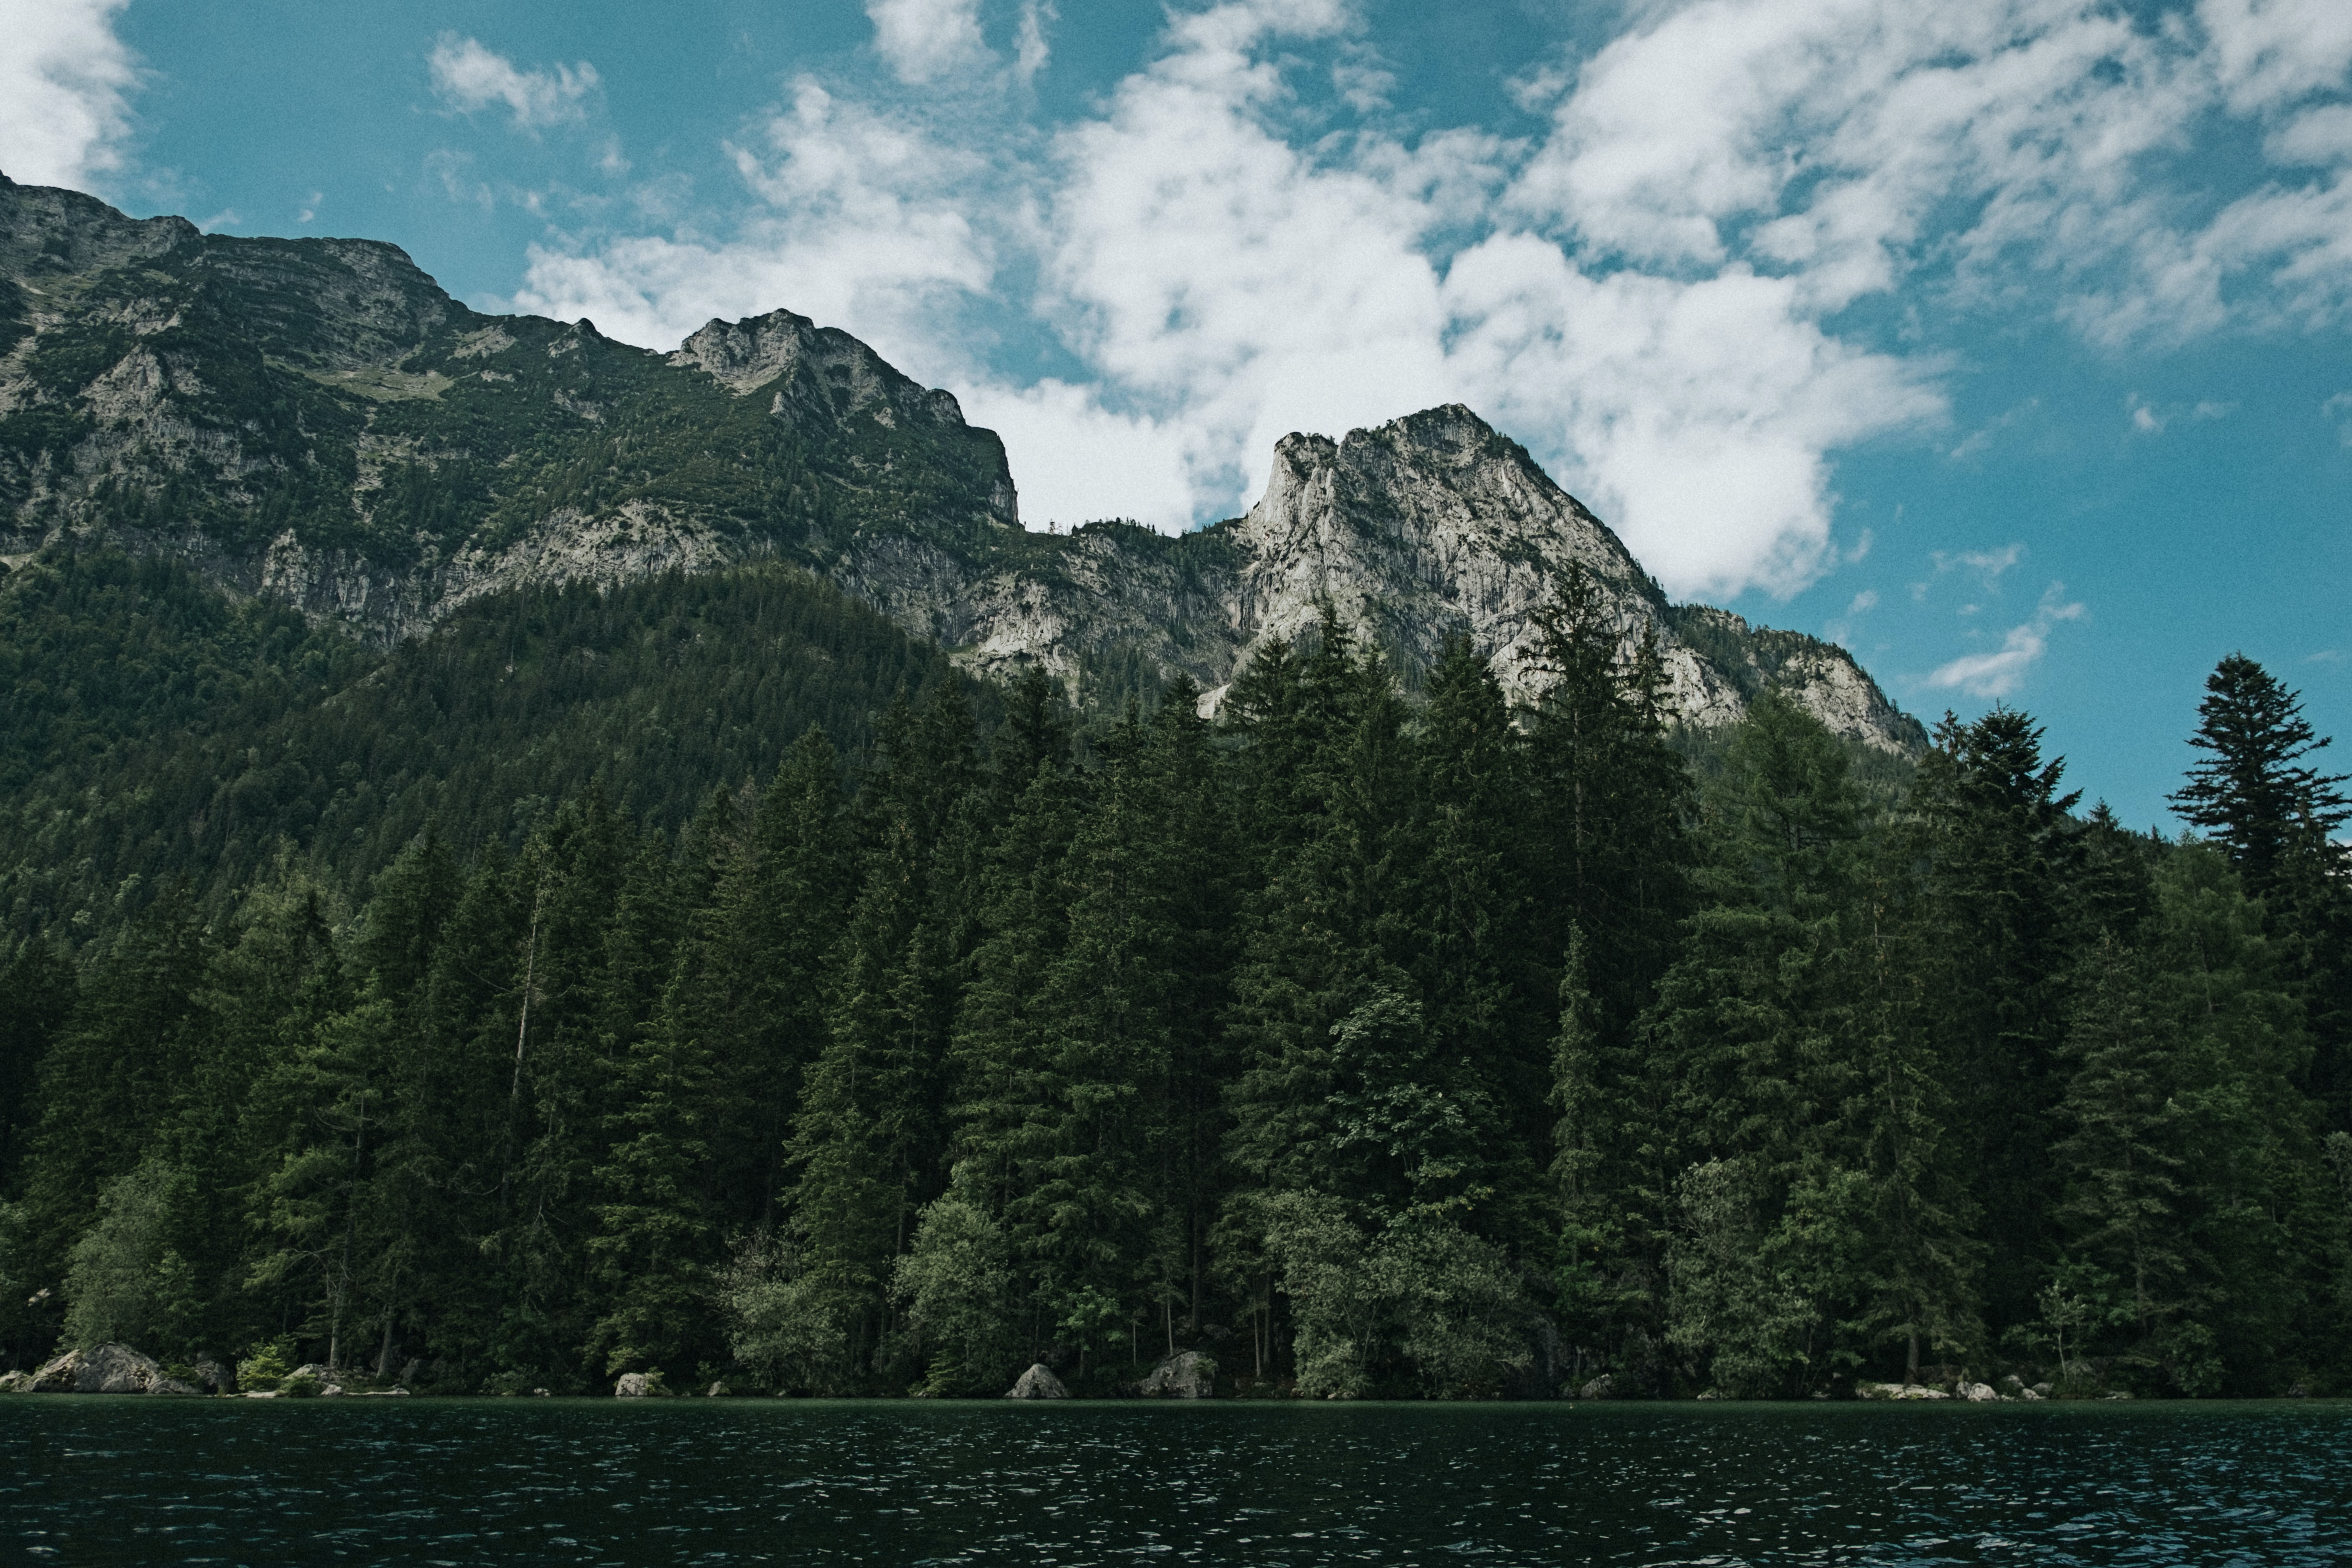 A forest-surrounded lake at the foot of a craggy mountain range